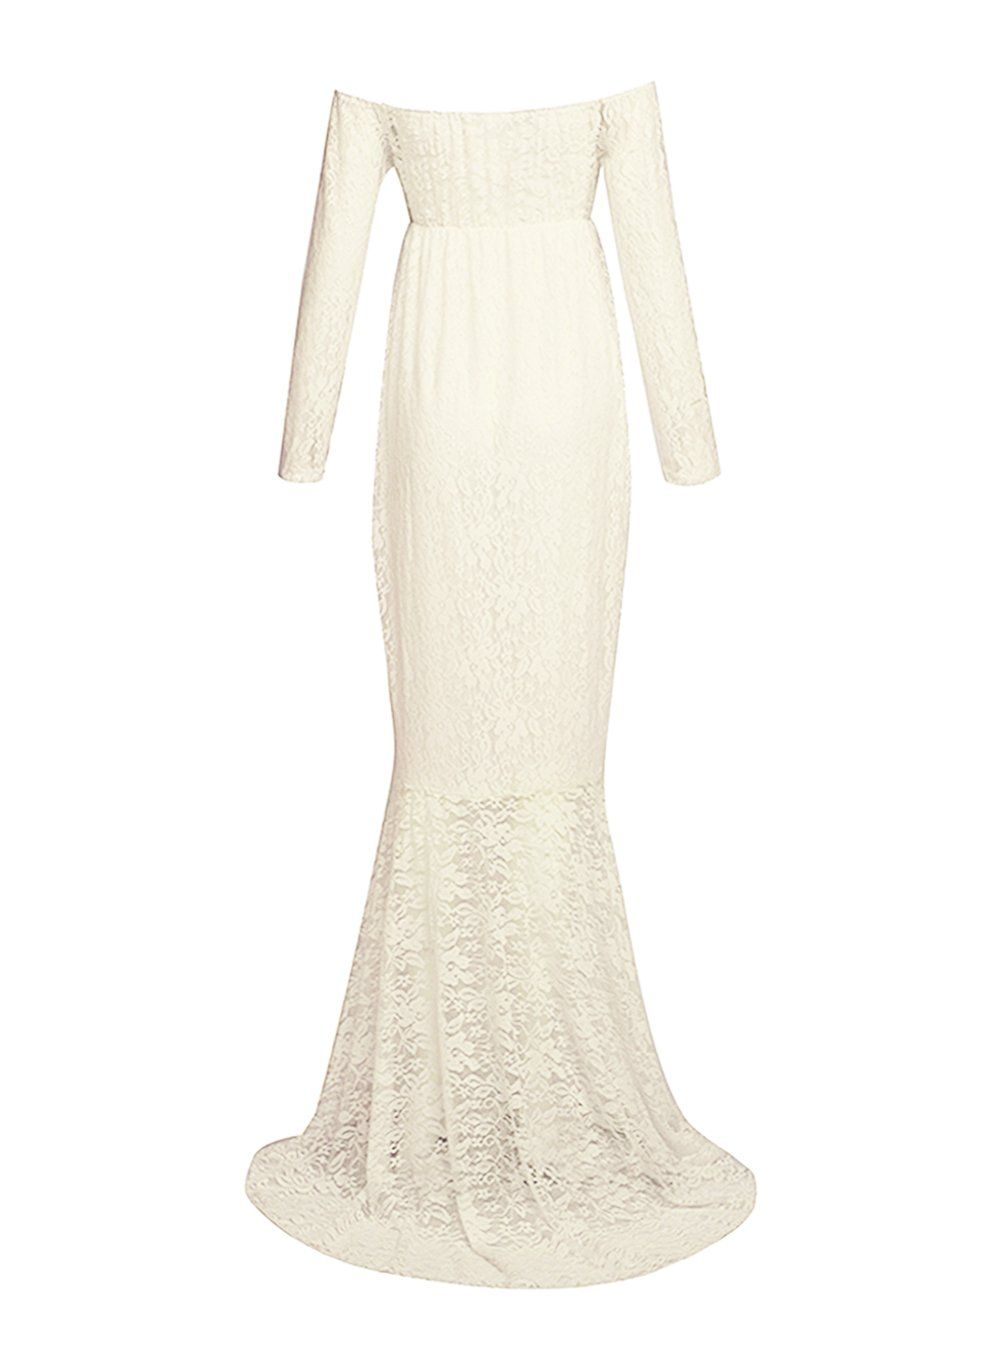 JustVH Women/'s Off Shoulder Long Sleeve Lace Mermaid Maternity Gown Maxi Dress